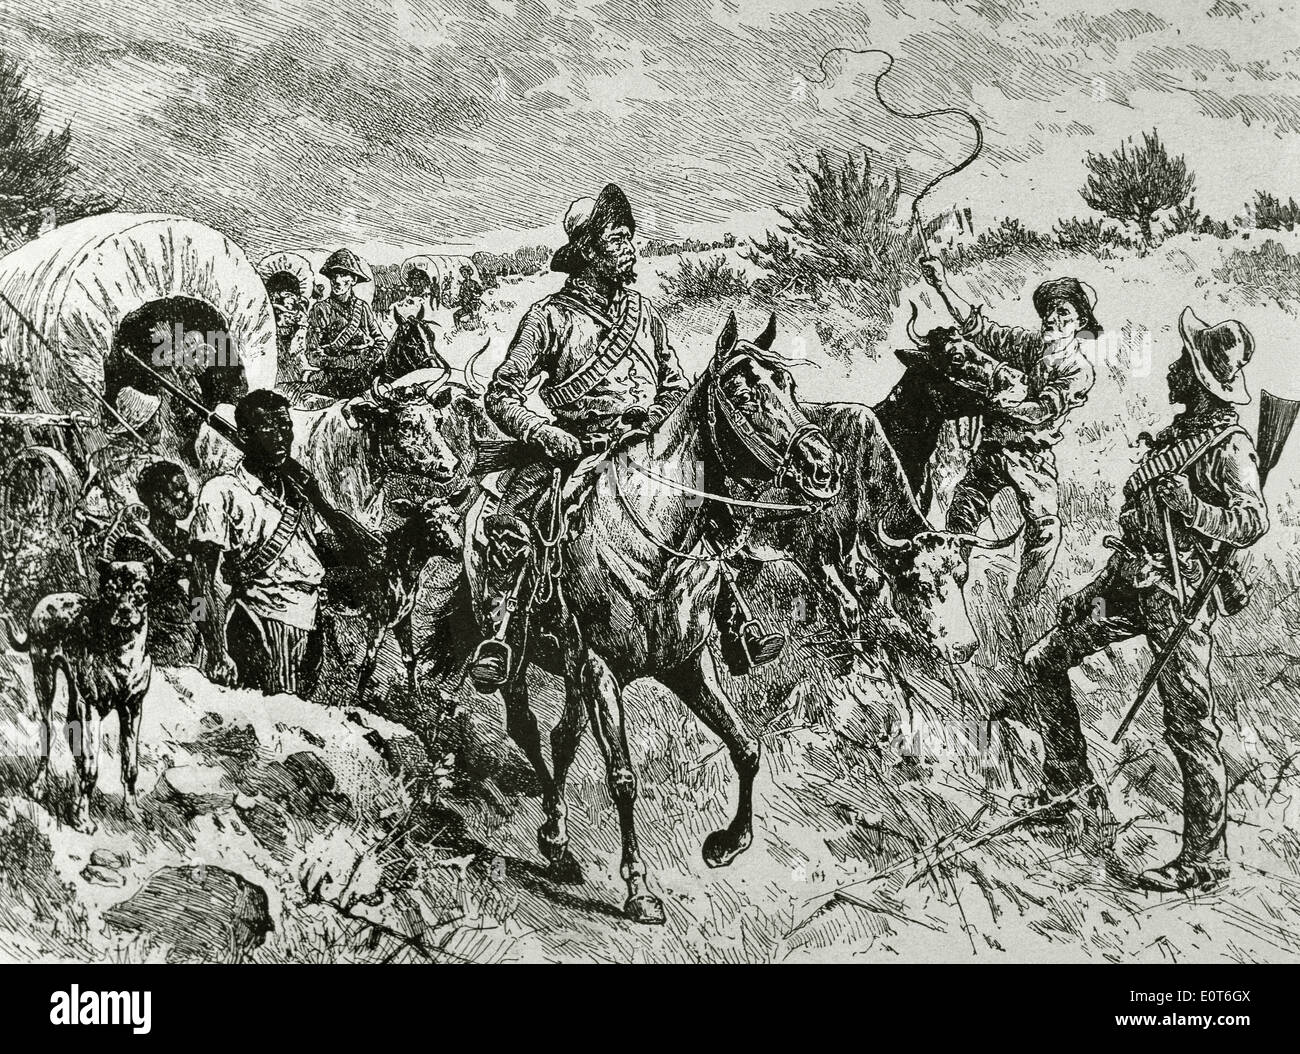 Second Anglo-Boer War (1899-1902). A convoy of Boers. Engraving, 19th century. - Stock Image